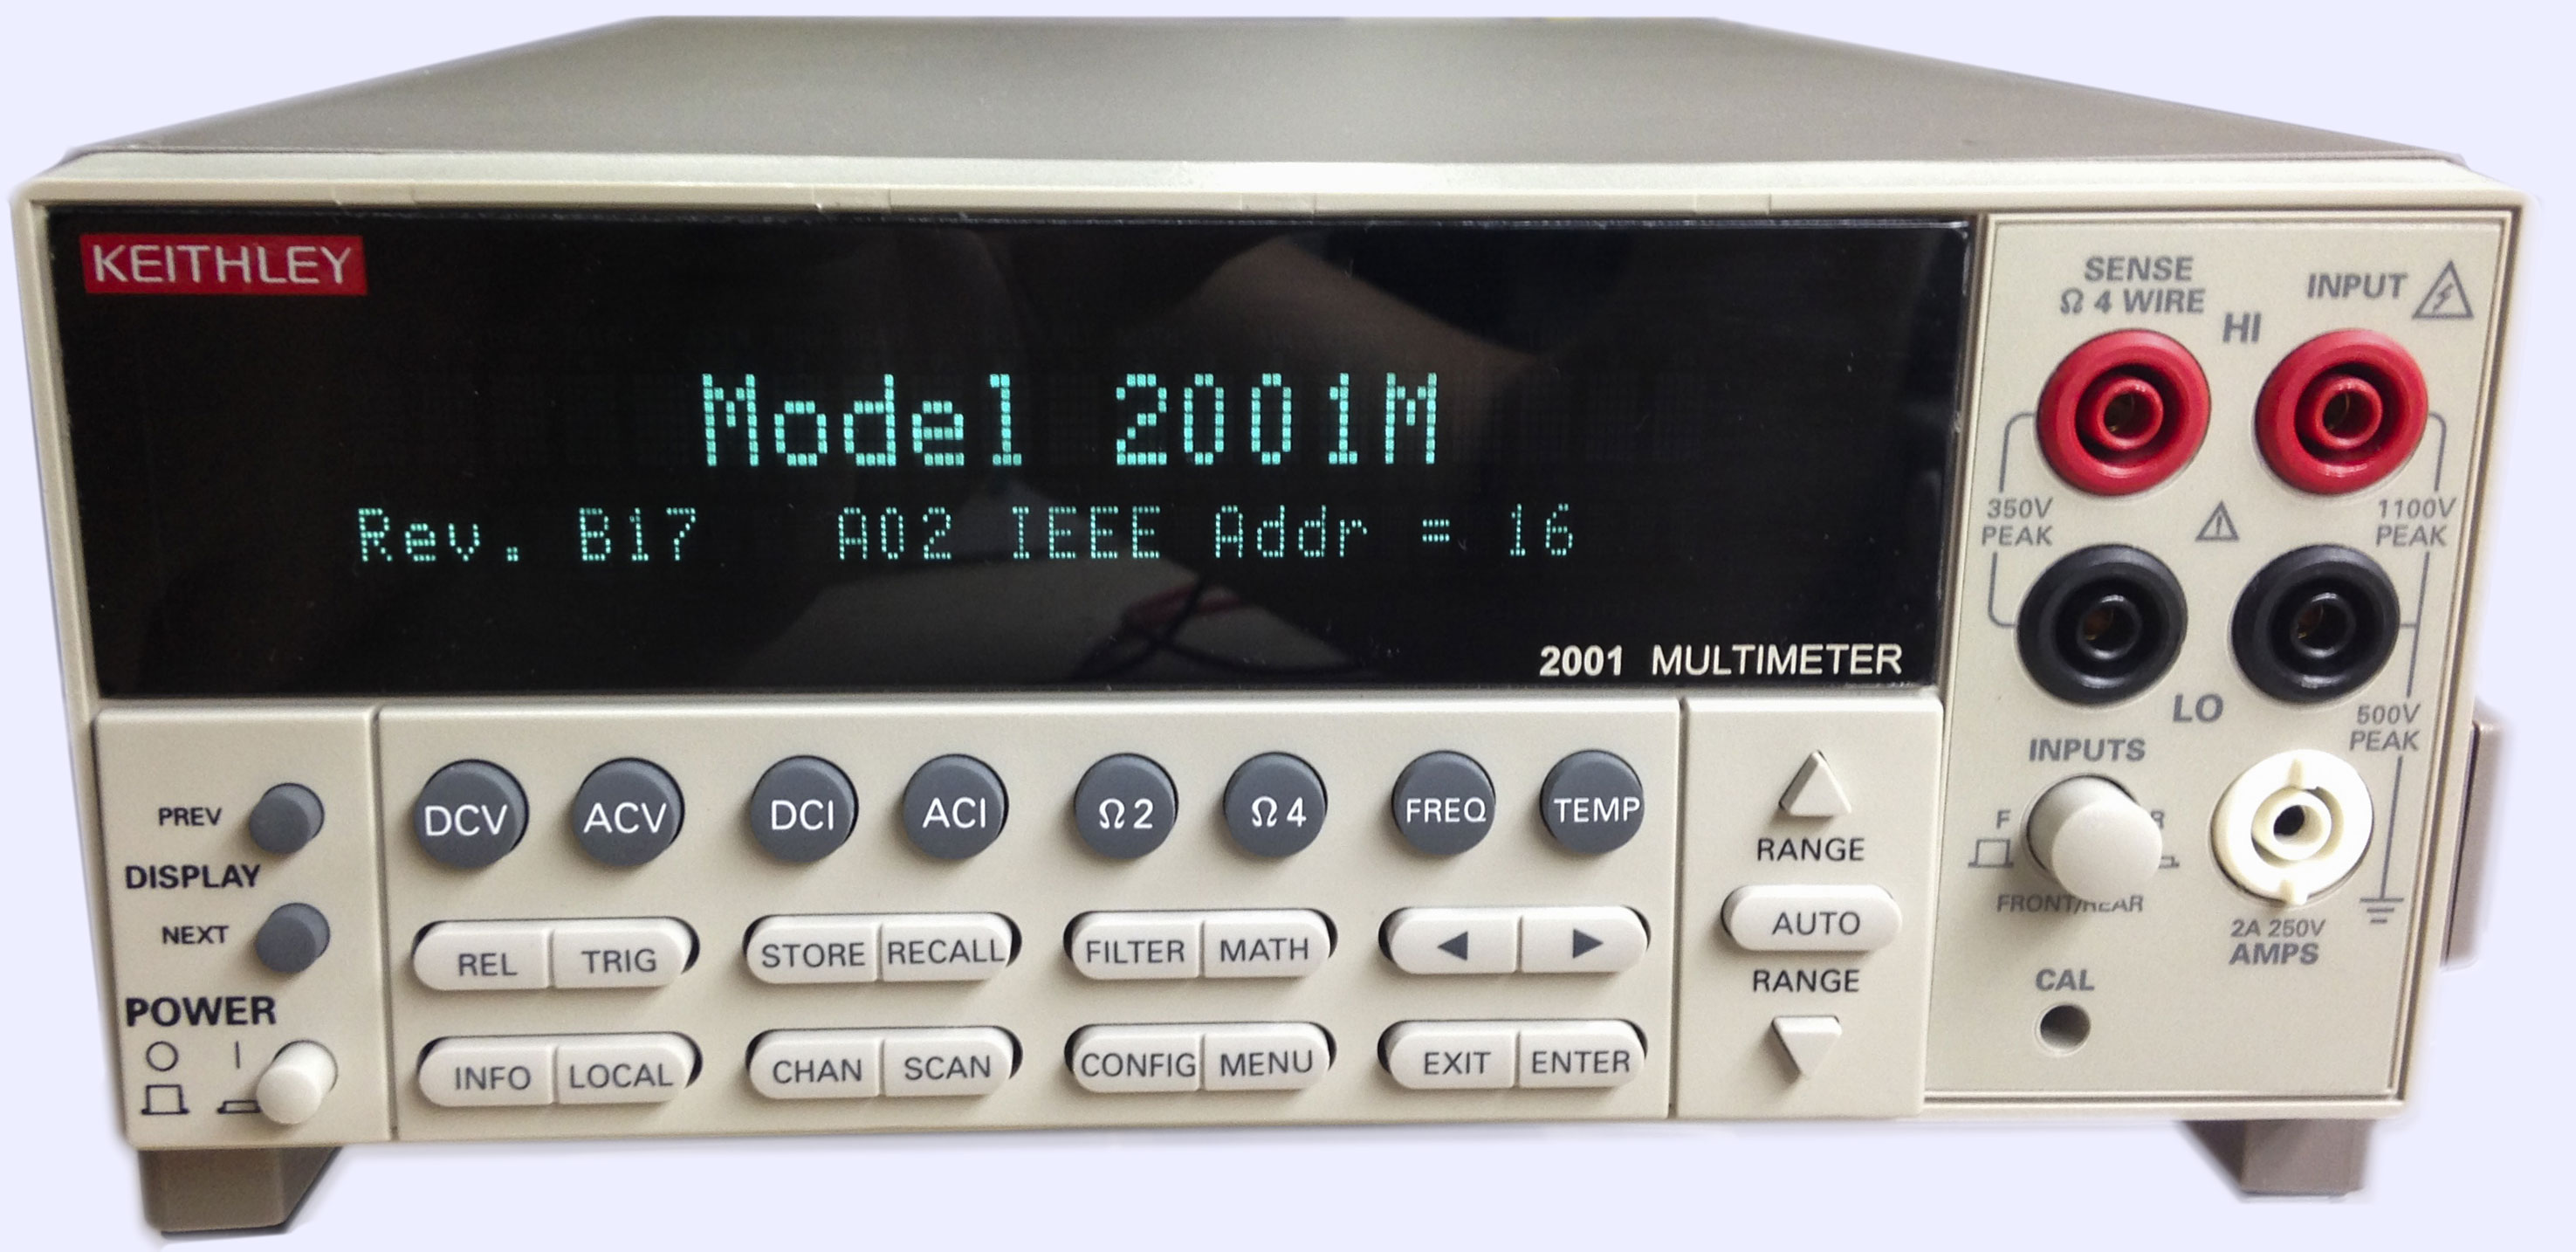 xDevs com | Review of Keithley Model 2001-M precision multimeter